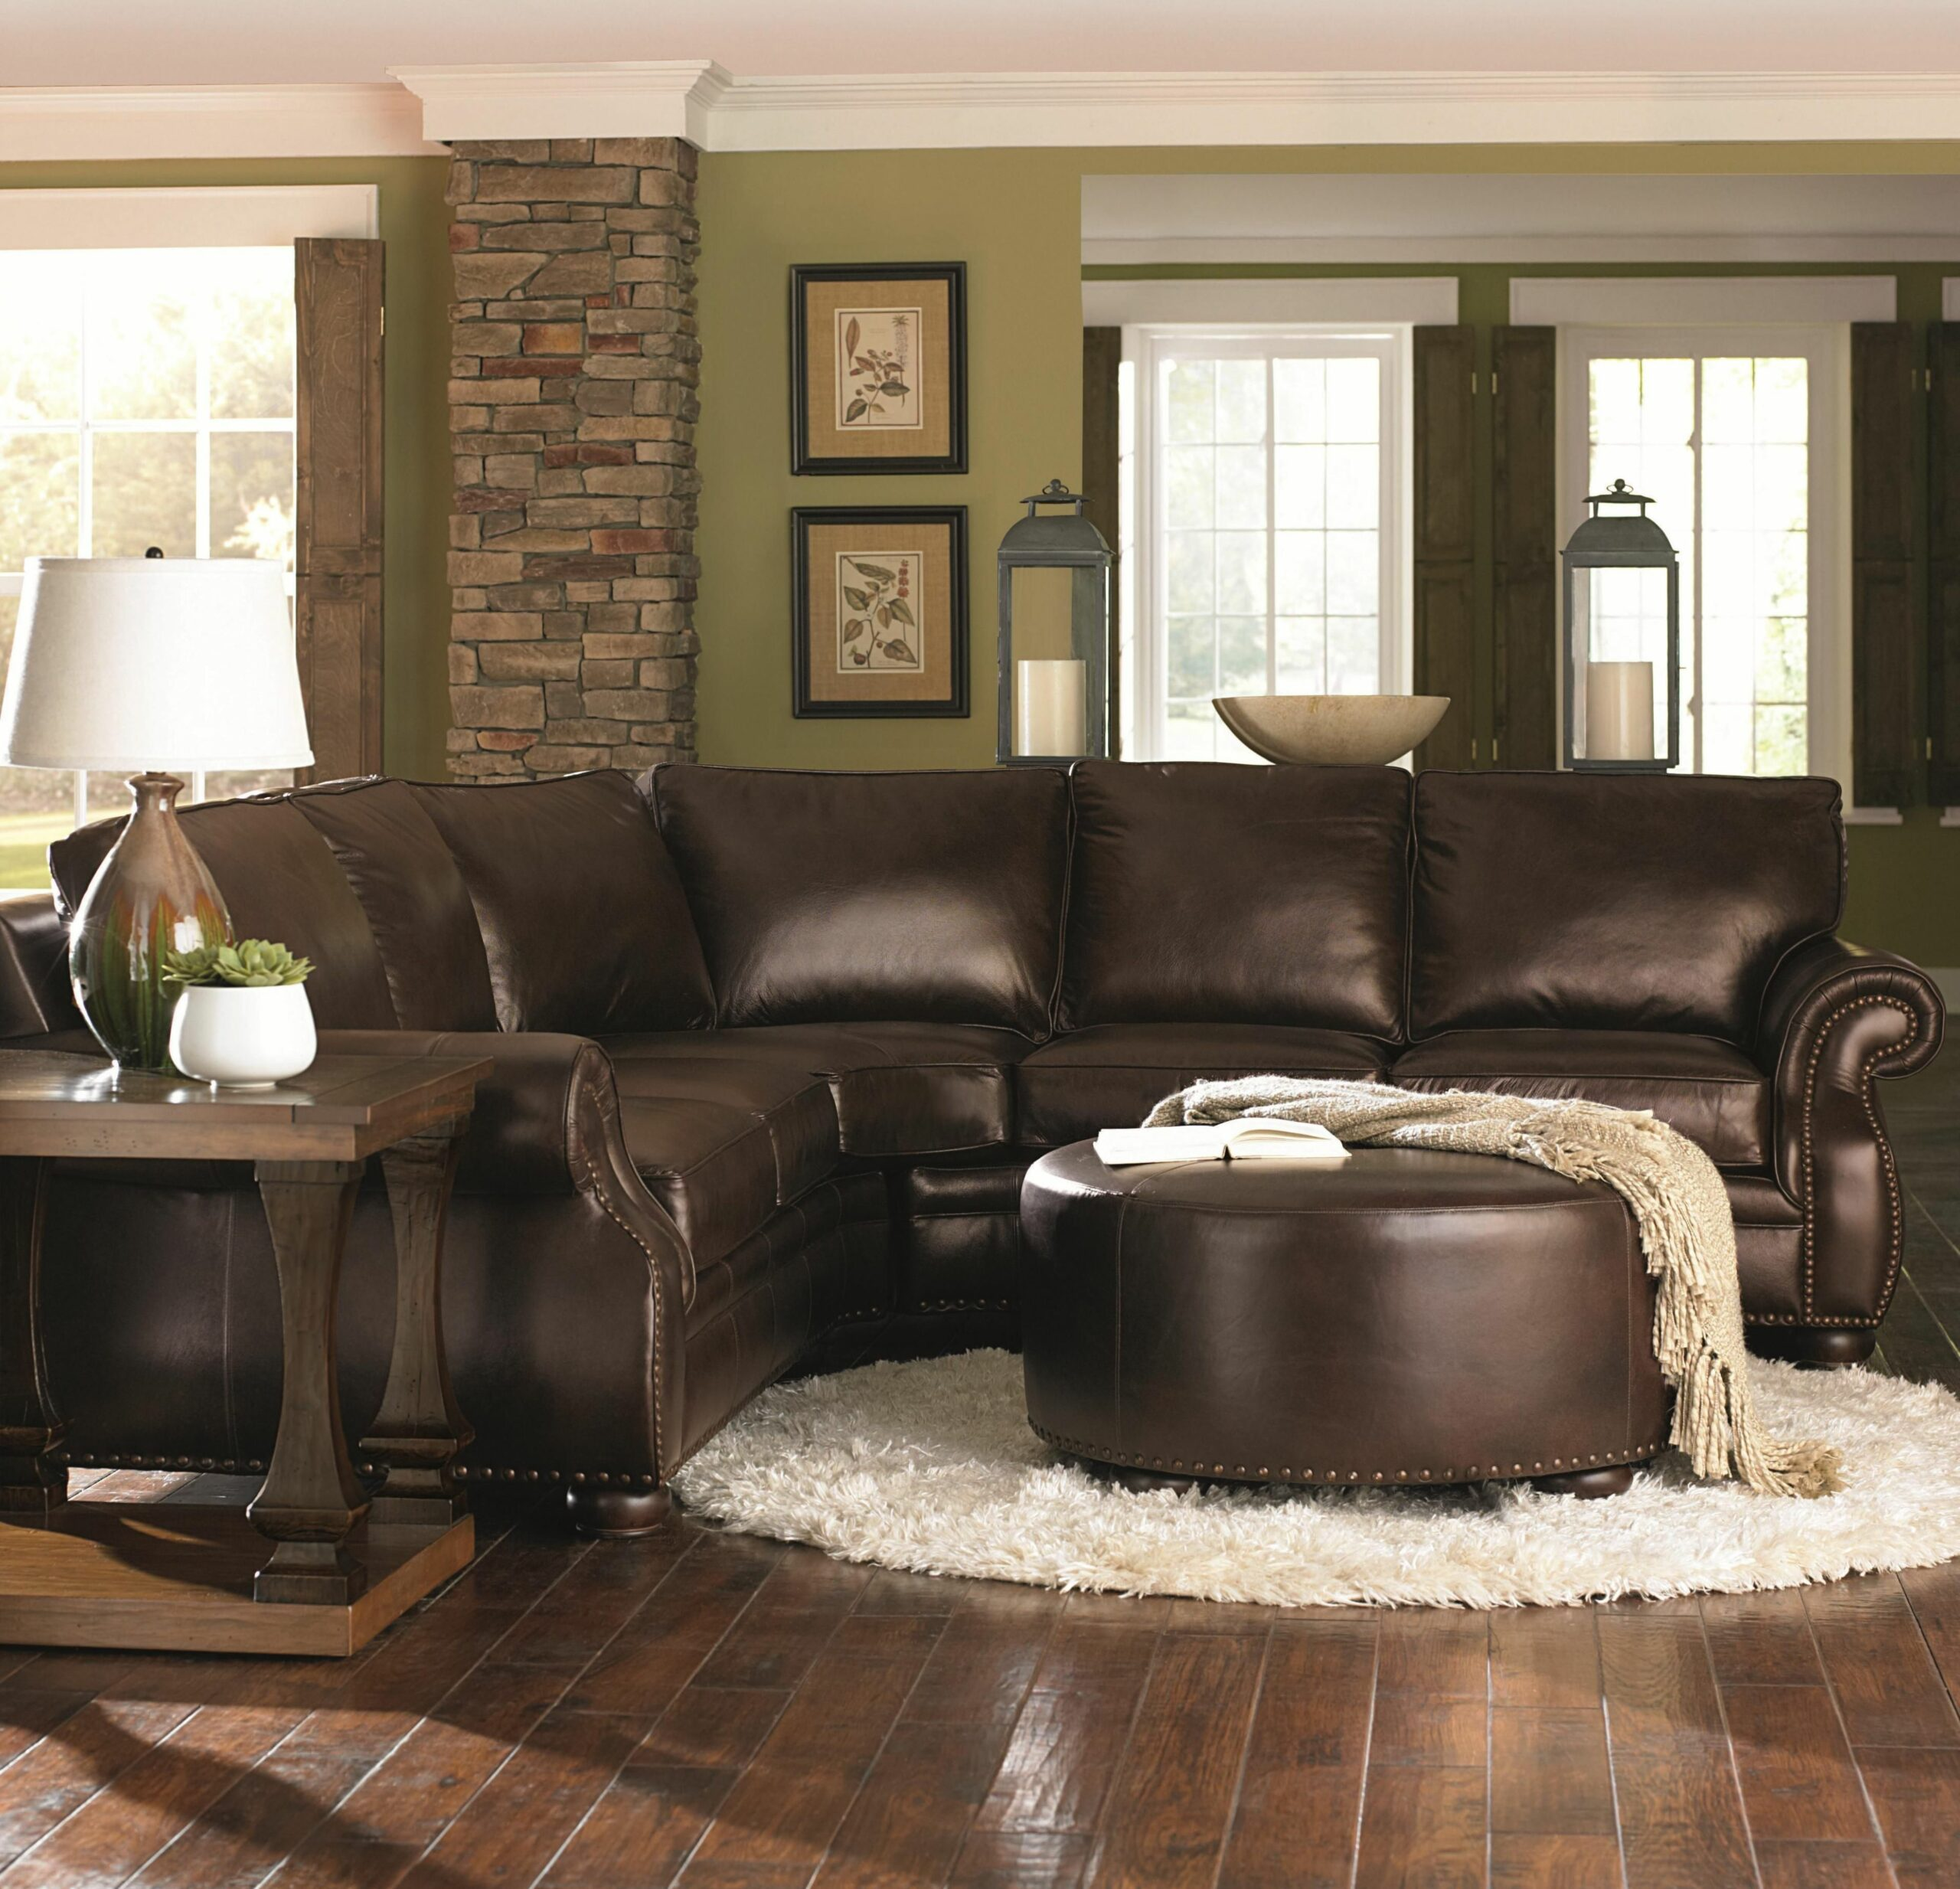 Chocolate Brown Leather Sectional w/ Round Ottoman - living room ideas with brown leather couch